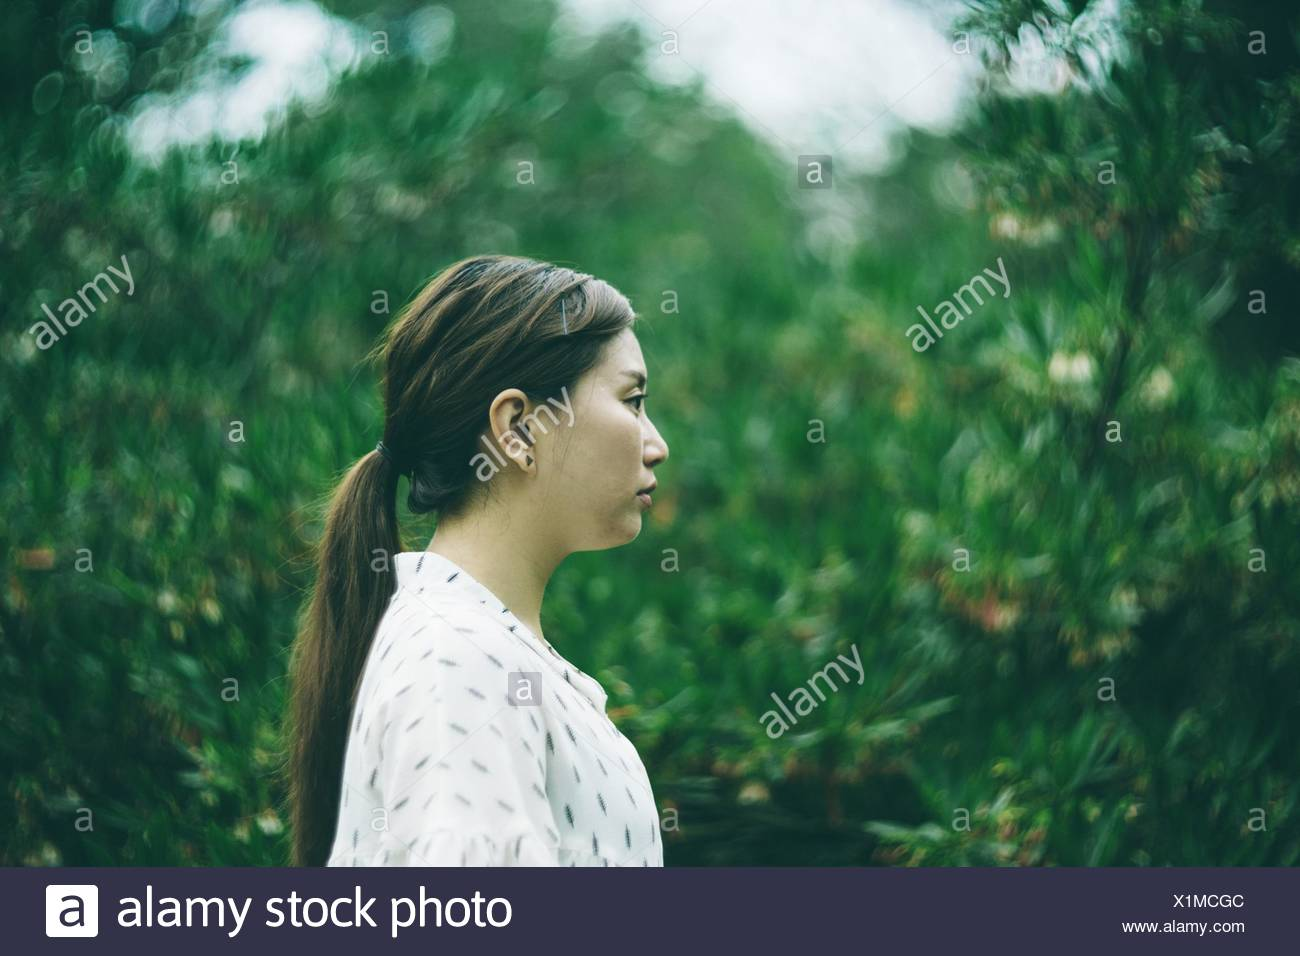 Side View Of Young Woman In Park - Stock Image